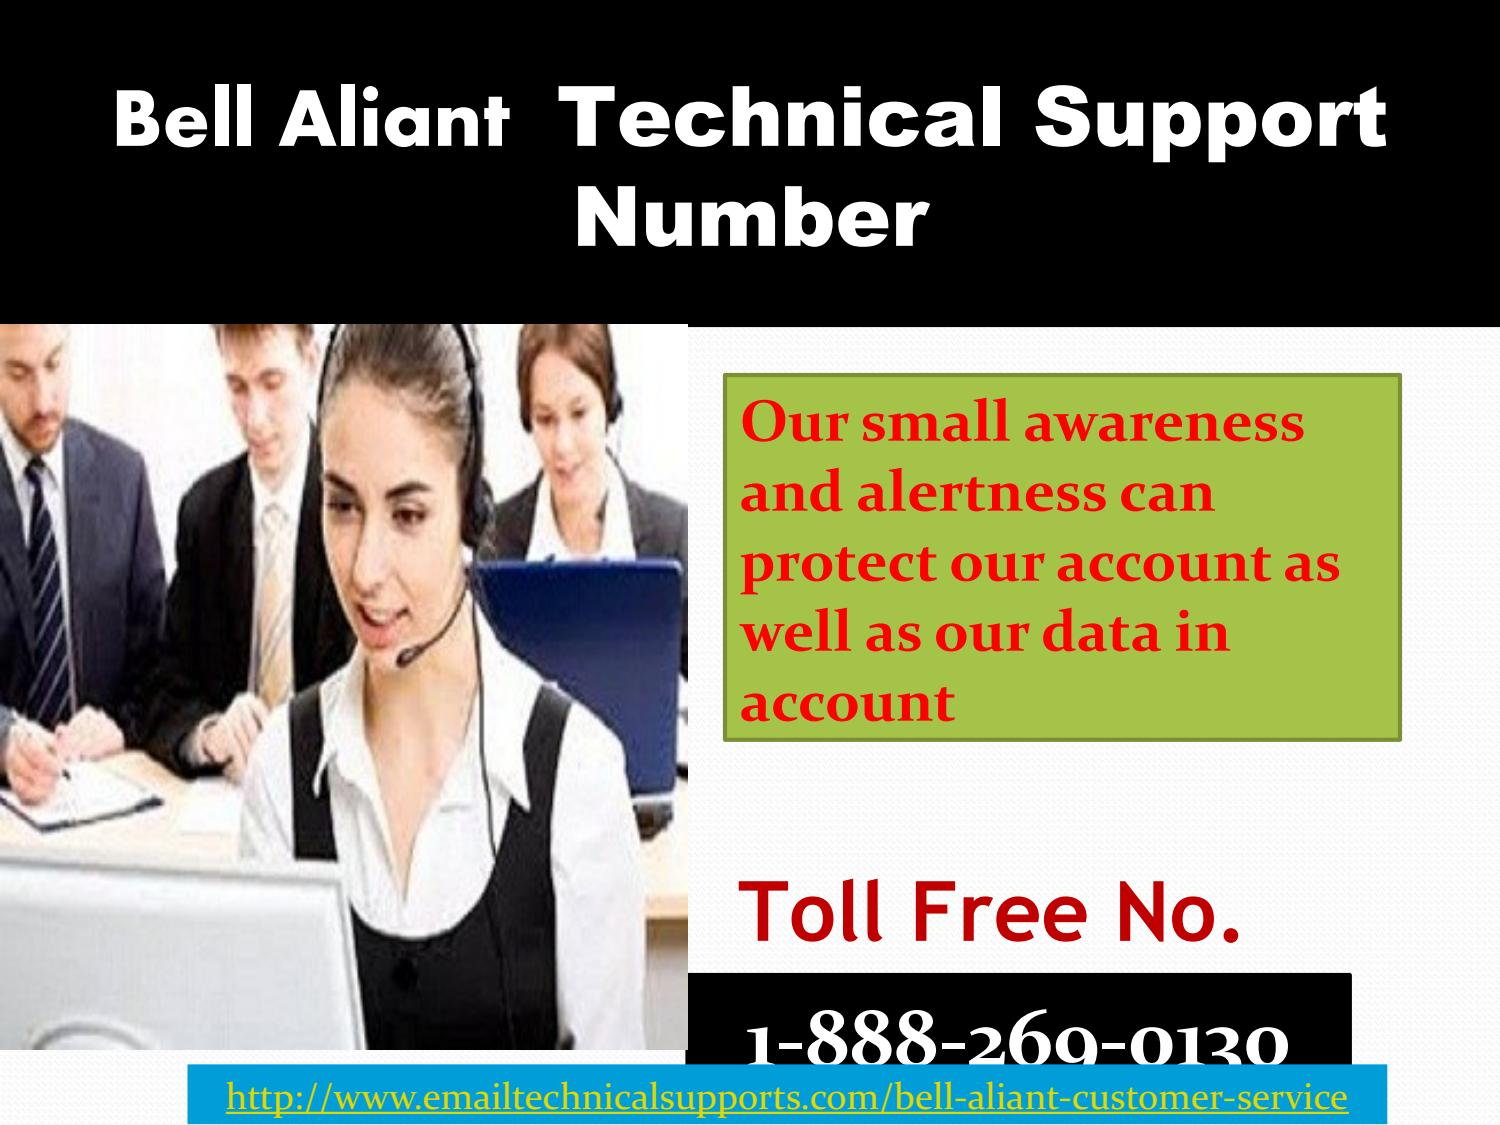 Bell aliant 1-888-269-0130 tech support phone number by